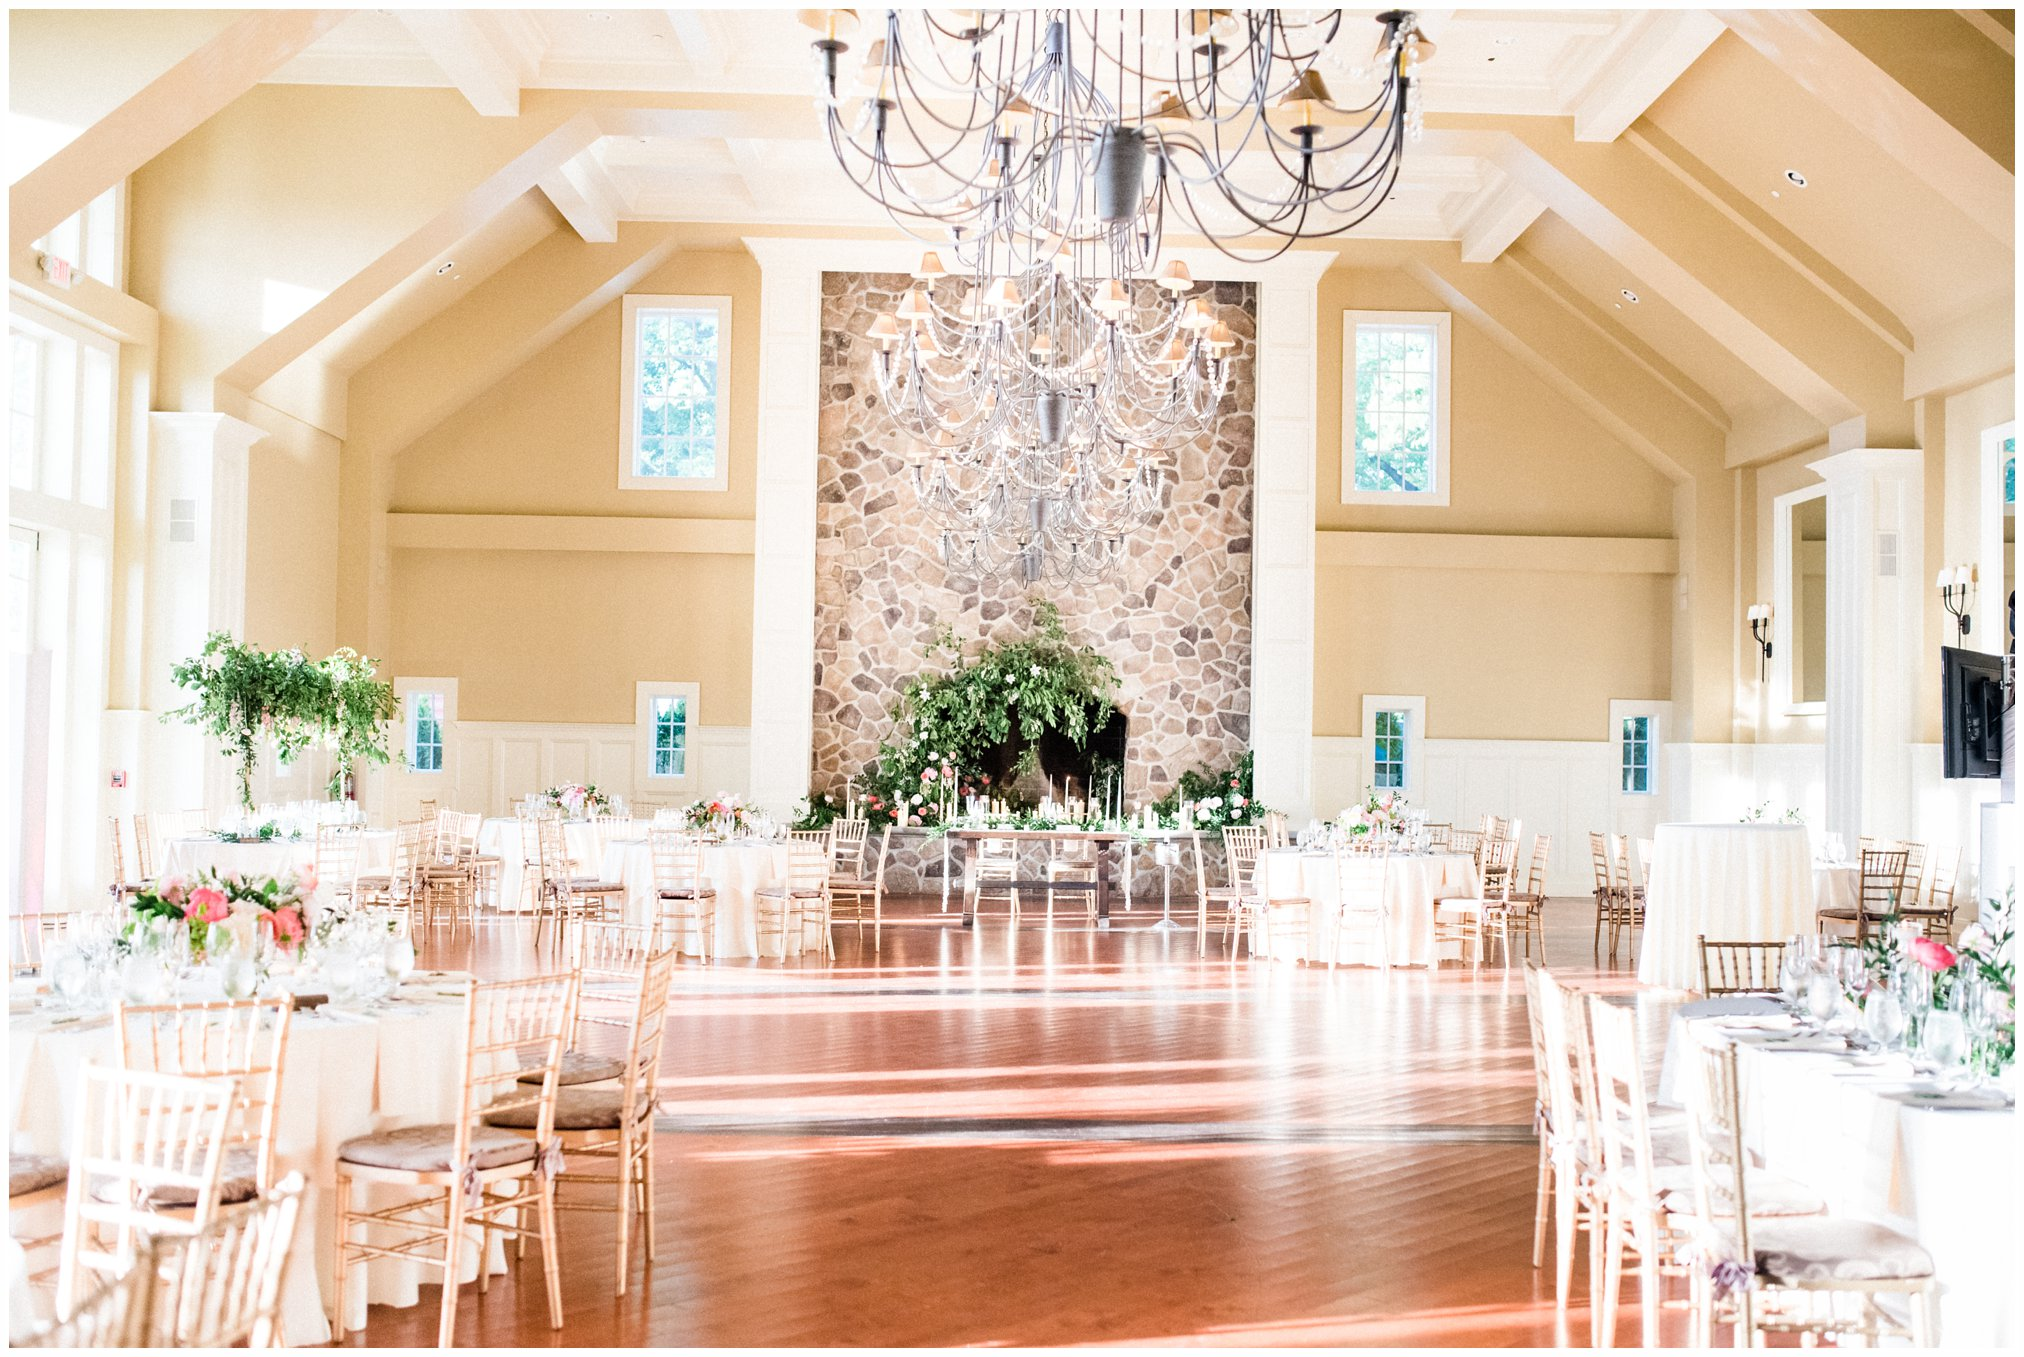 the ryland inn banquet hall in whitehouse station , nj